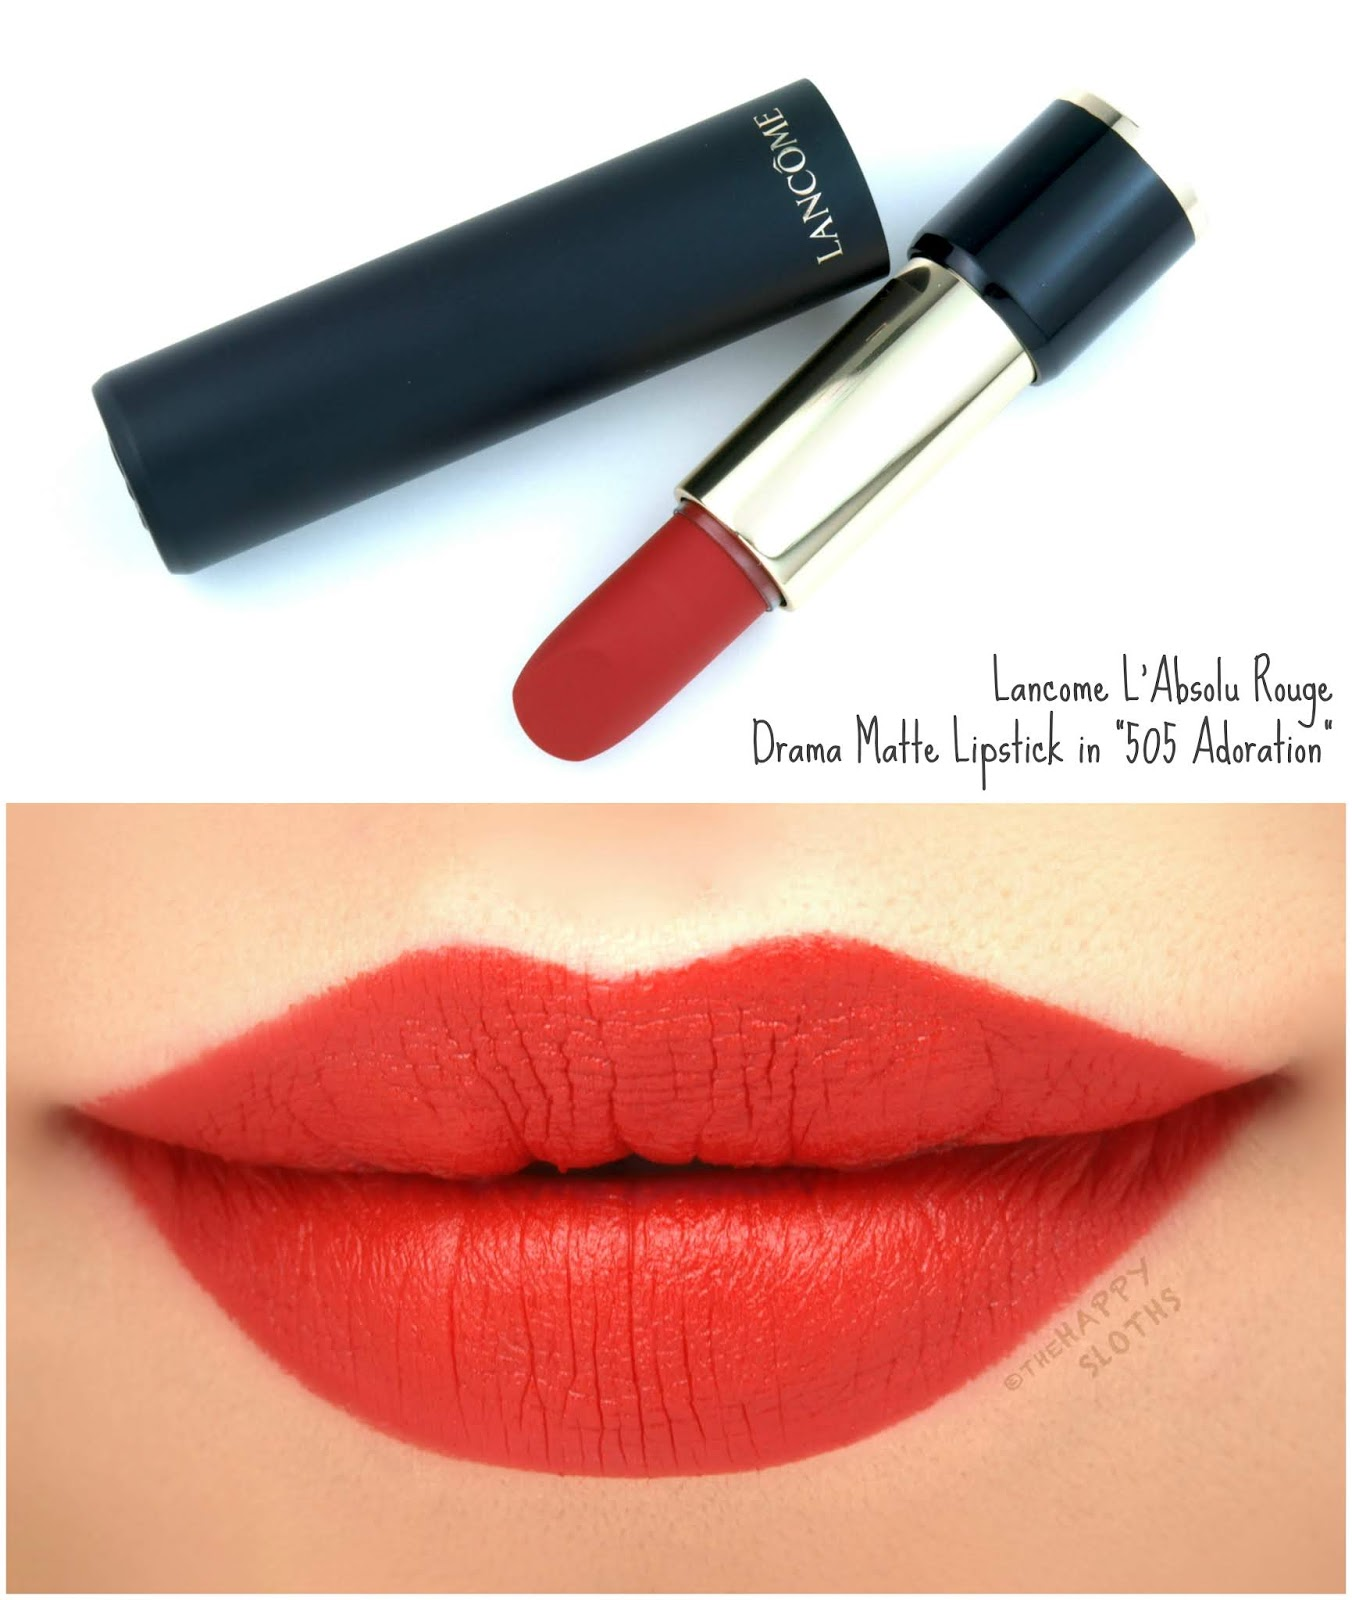 "Lancome | L'Absolu Rouge Drama Matte Lipstick in ""505 Adoration"": Review and Swatches"